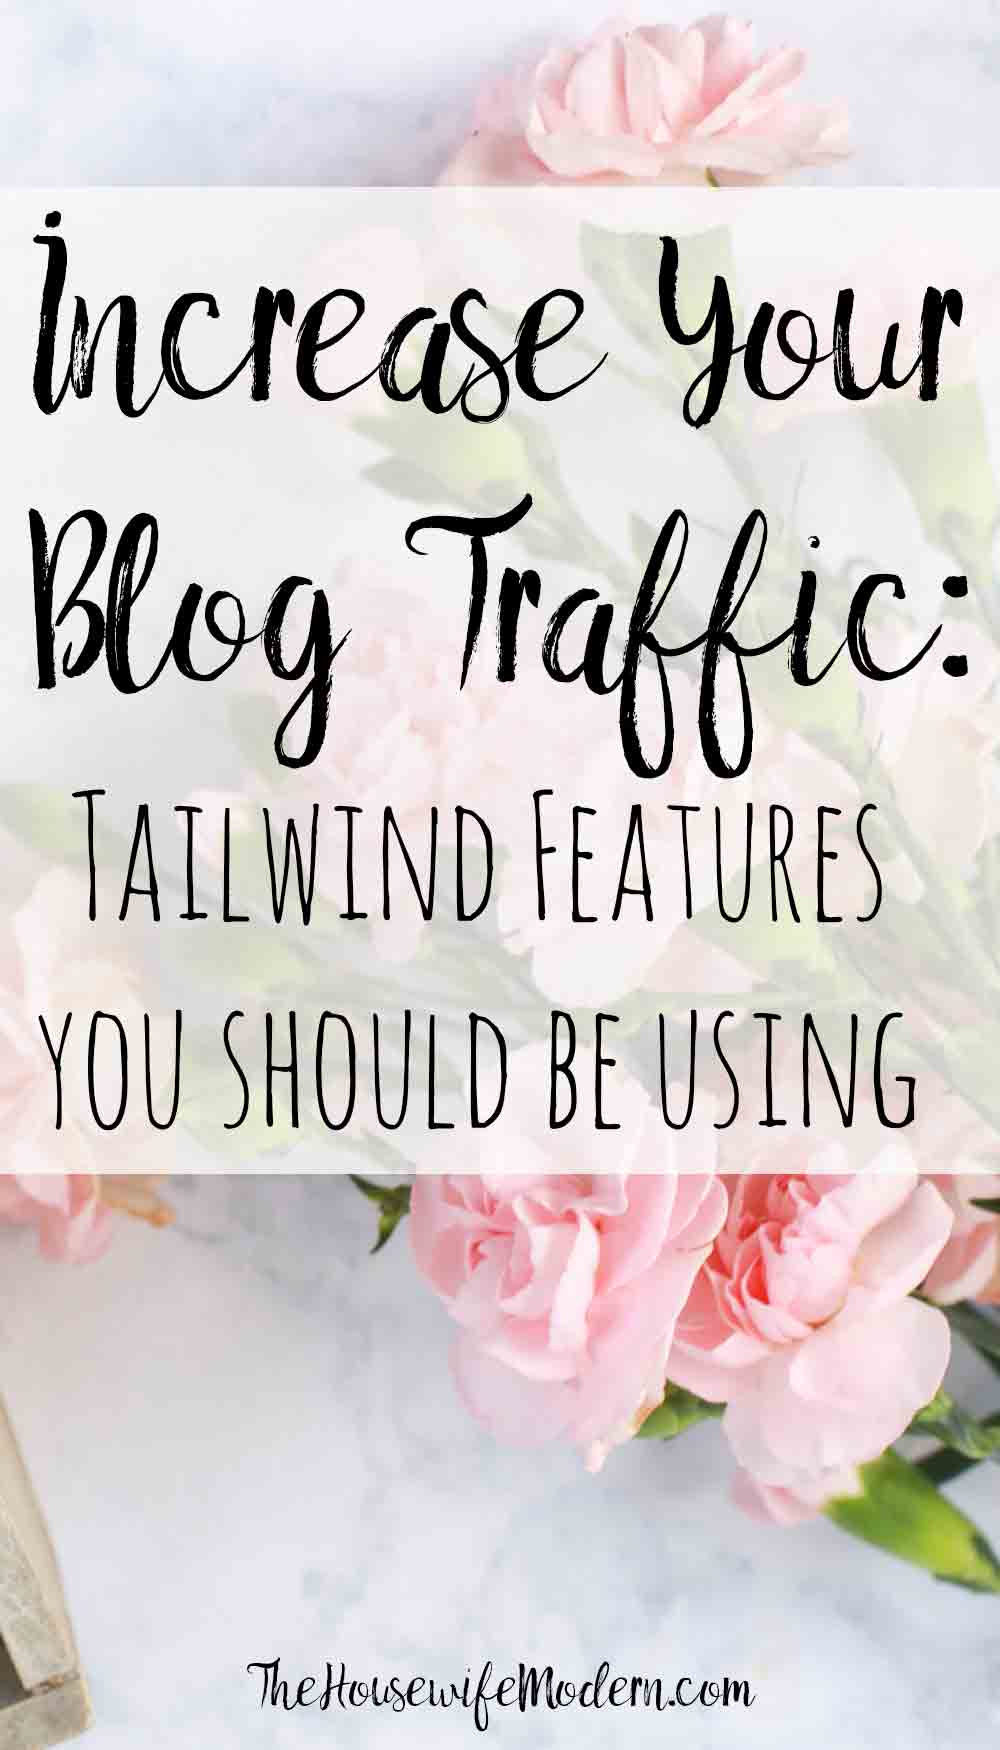 How to Use Tailwind: All the Features You Need to Know. Why I love Tailwind (my traffic is up by 487% in 3 little months), all of the features, and exactly how to use them. #tailwind #pinterest #blog #blogging #tailwindfeatures #traffic